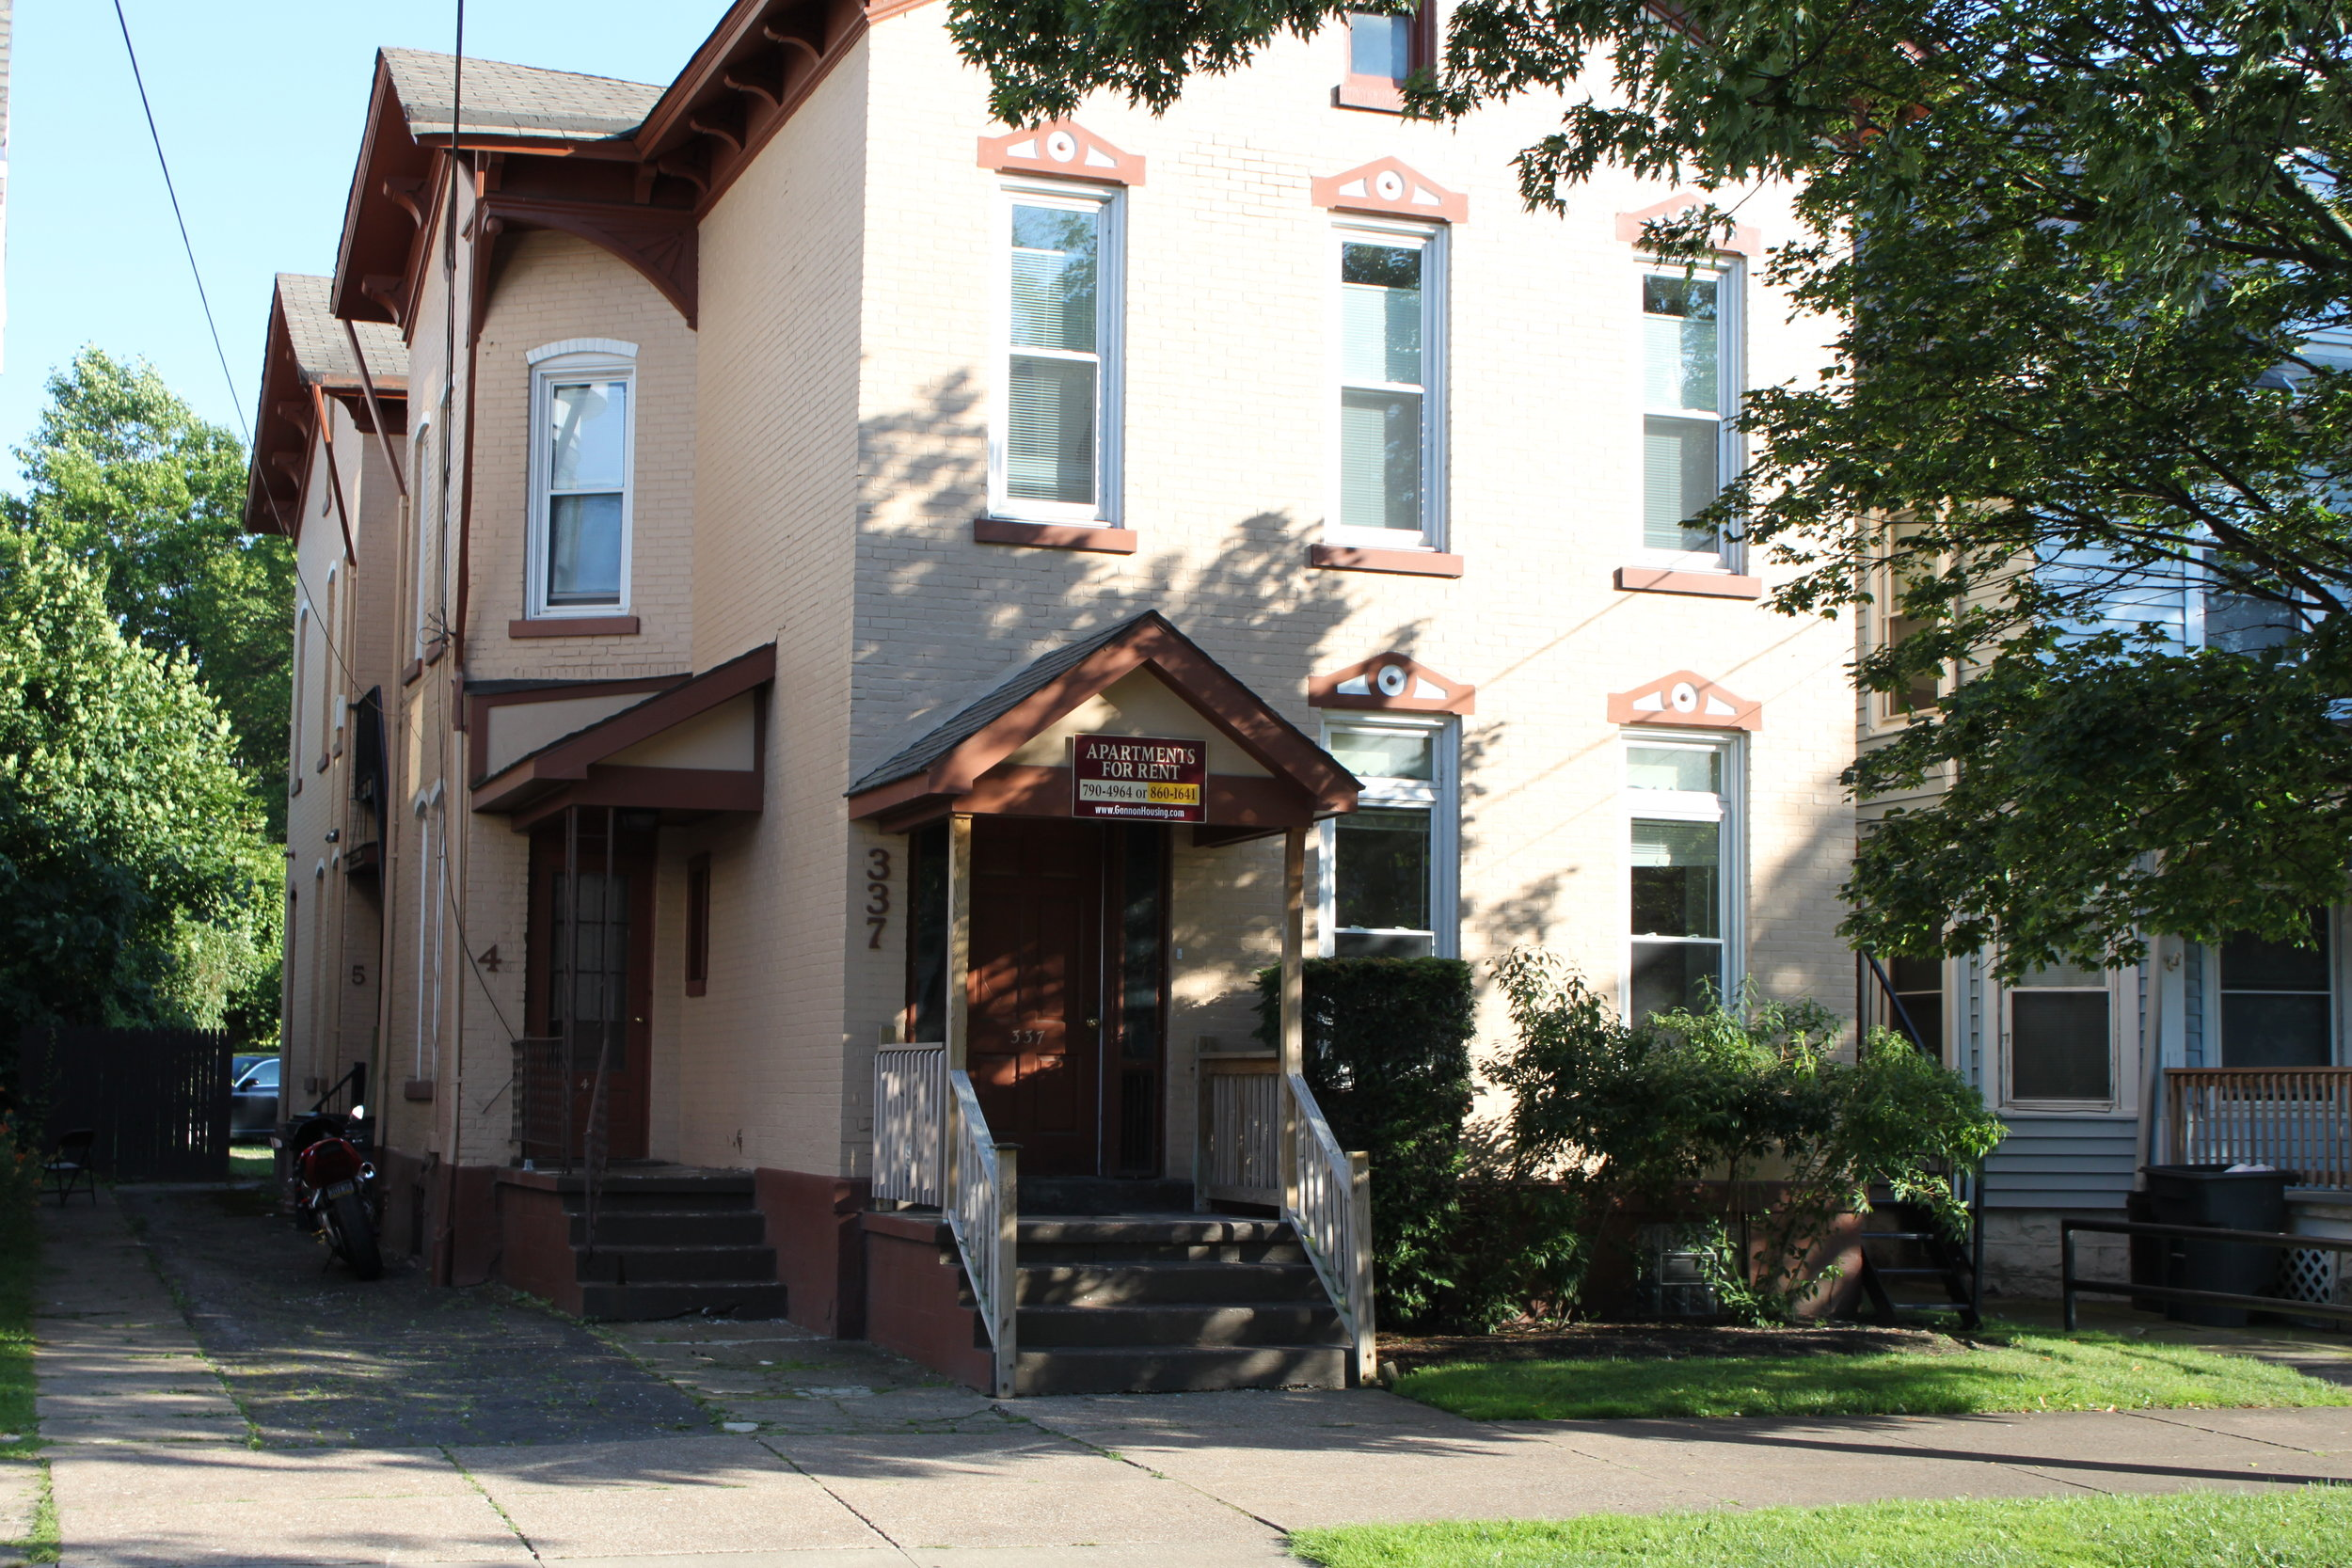 337 West 8th - 337 West 8th St. Erie Pa. 16502In the charming Presta District, this four unit building provides off street parking, onsite laundry, and is a quick walk to Gannon University Campus.